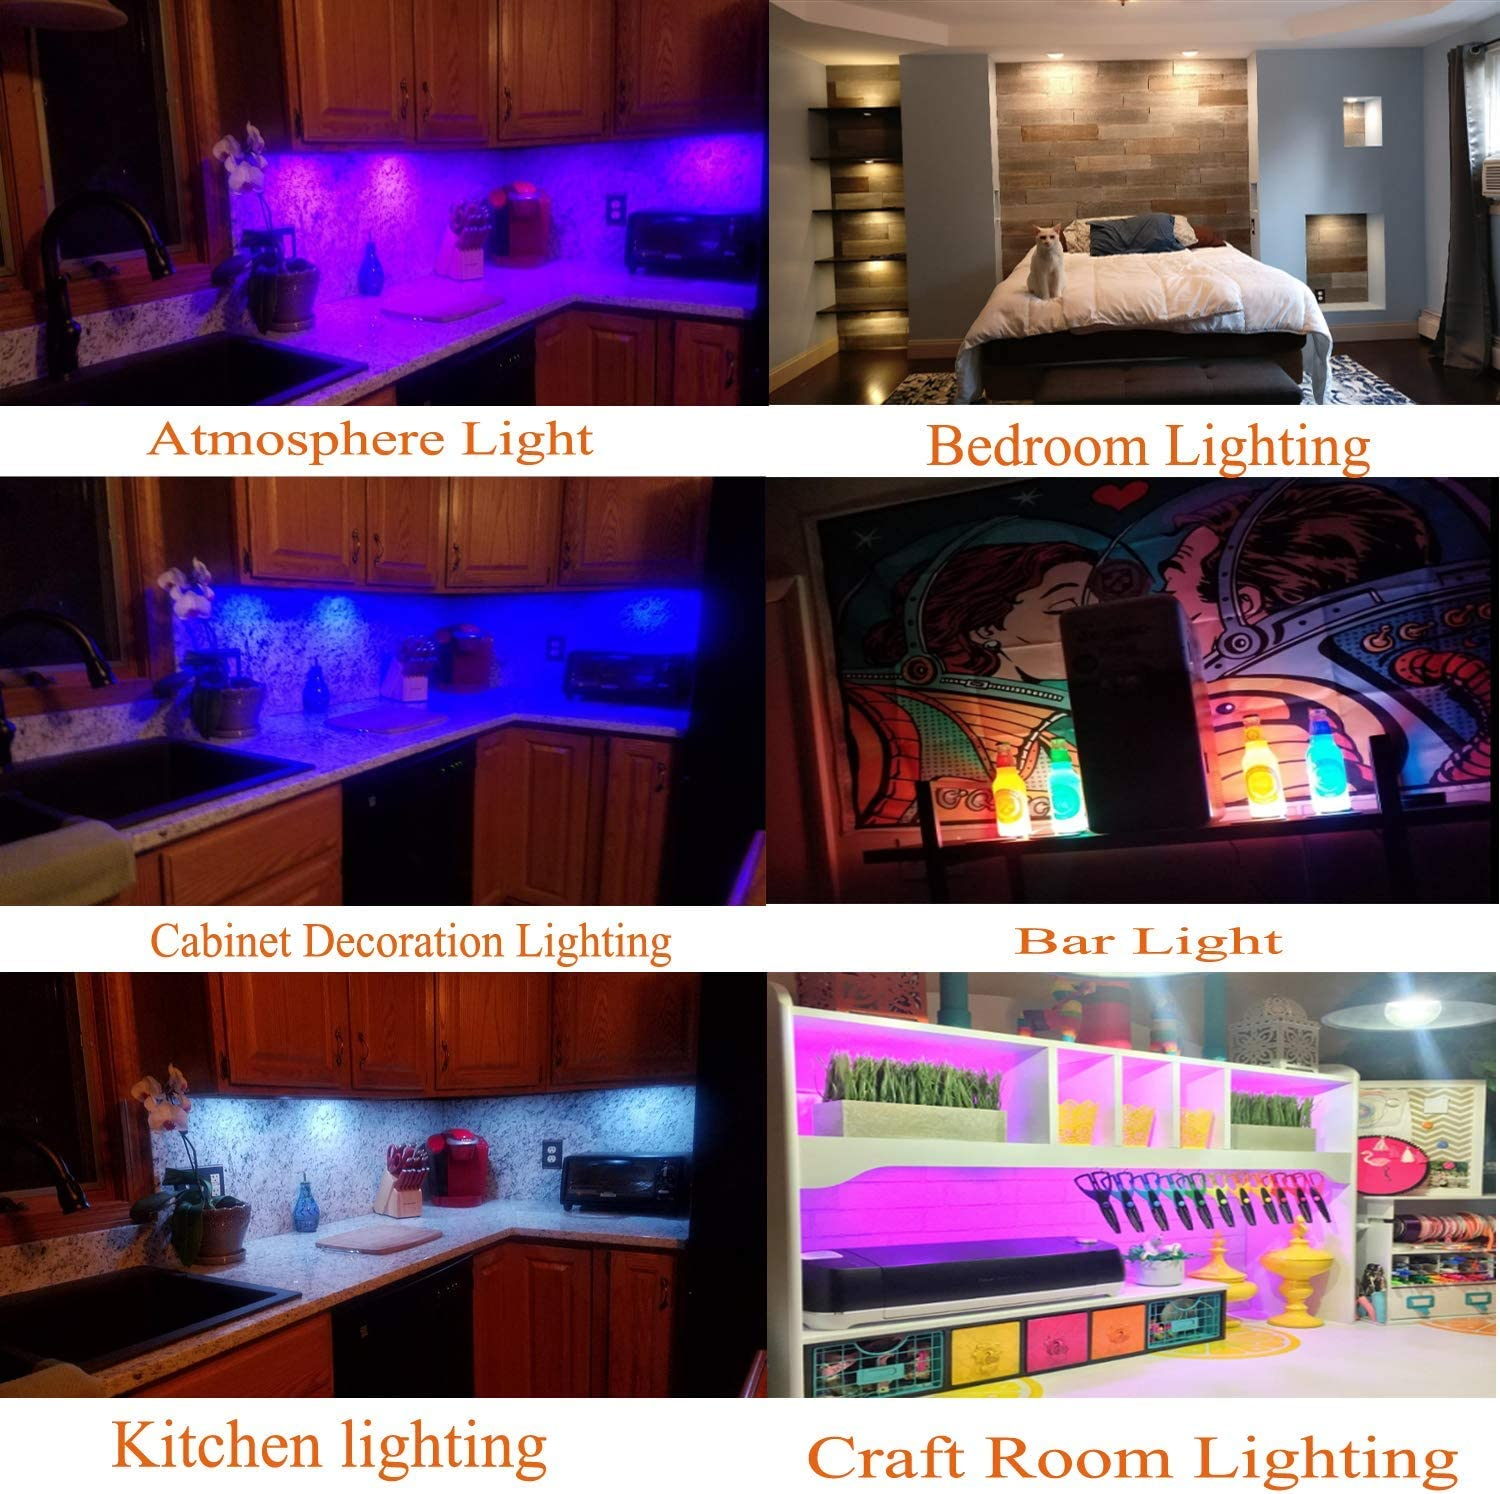 Buy Aiboo Rgb Color Changing Led Under Cabinet Lights Kit Aluminum Slim Multi Color Puck Lights For Kitchen Counter Furniture Holiday Ambiance Christmas Decor Lighting 4 Lights Online In Indonesia B01fukkzfo